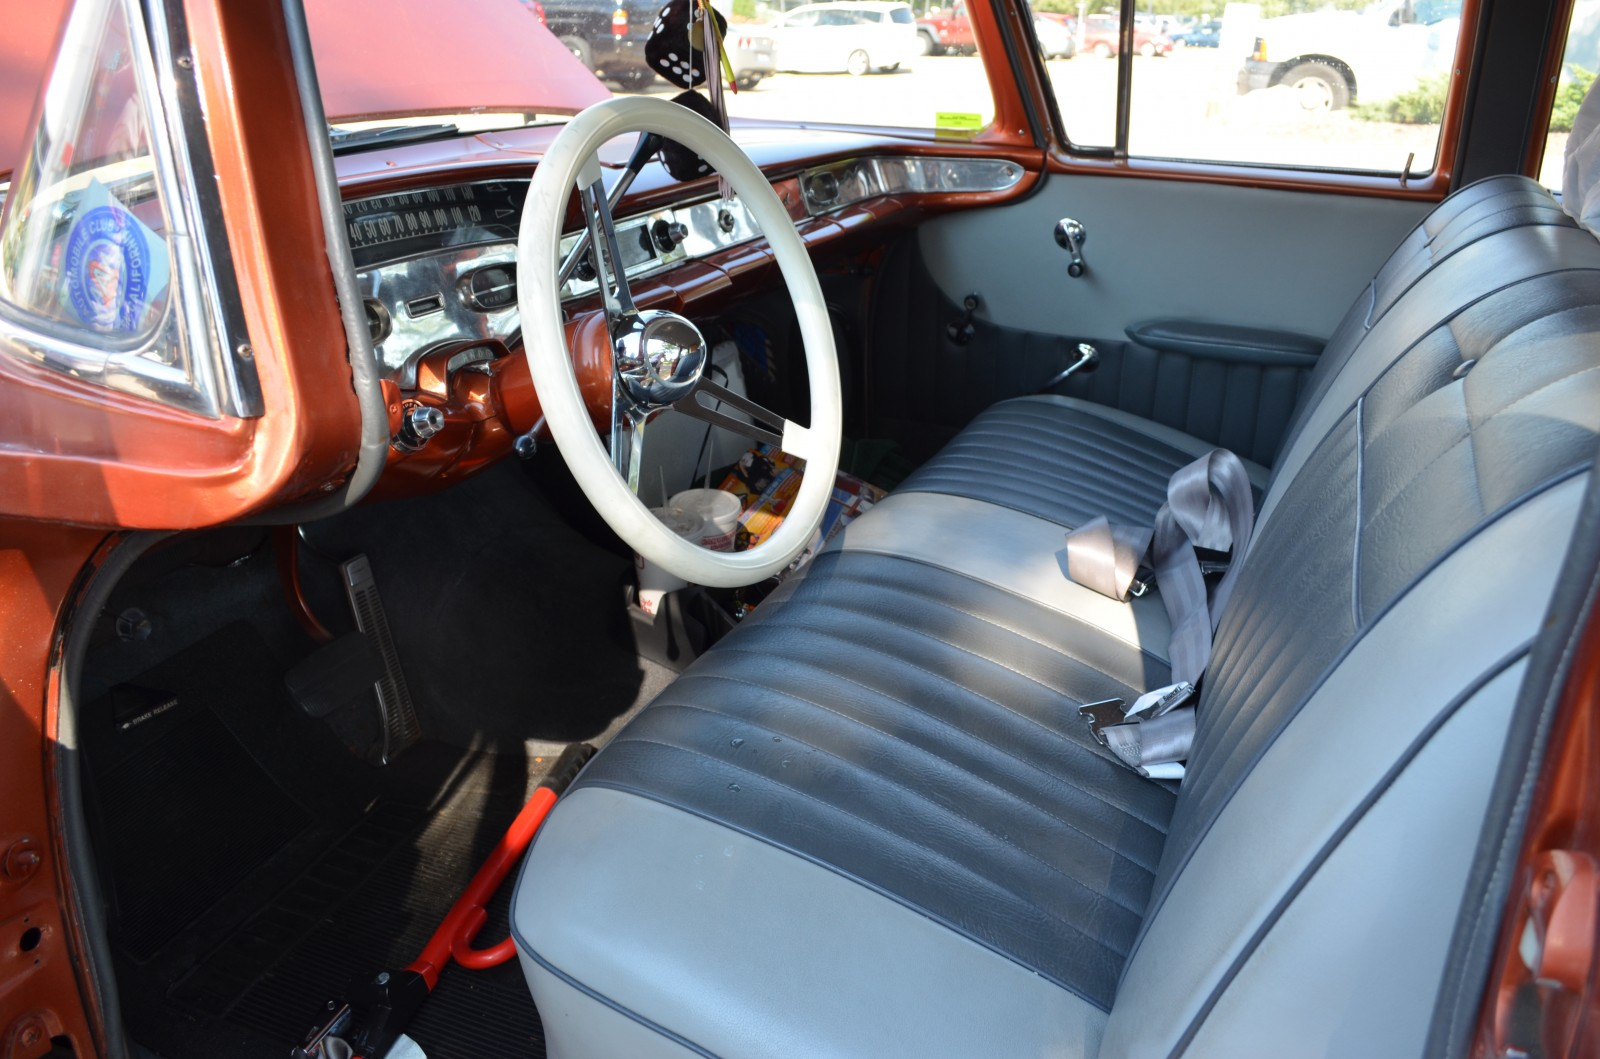 1958 Chevy Nomad Interior Kitchen And Living Space 1957 Chevrolet Hot Rods Honeymoons Swedish Newlyweds Get Their Kicks 1955 1954